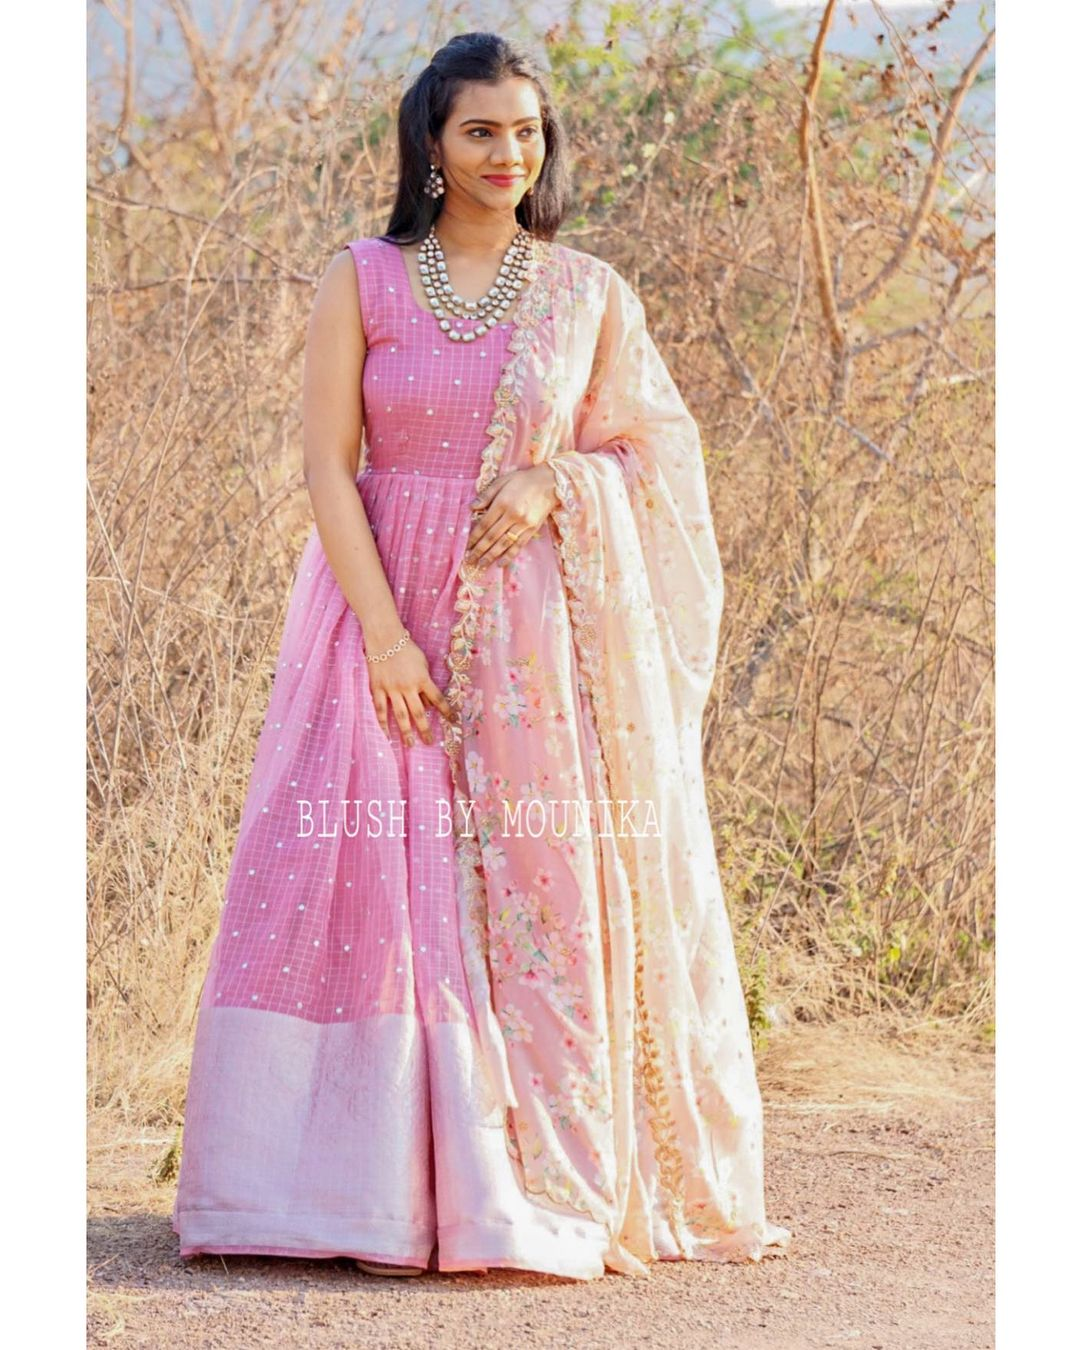 Beautiful blush pink color silver pattu long frock with floral net duaptta. Dupatta with cut work. 2021-03-15